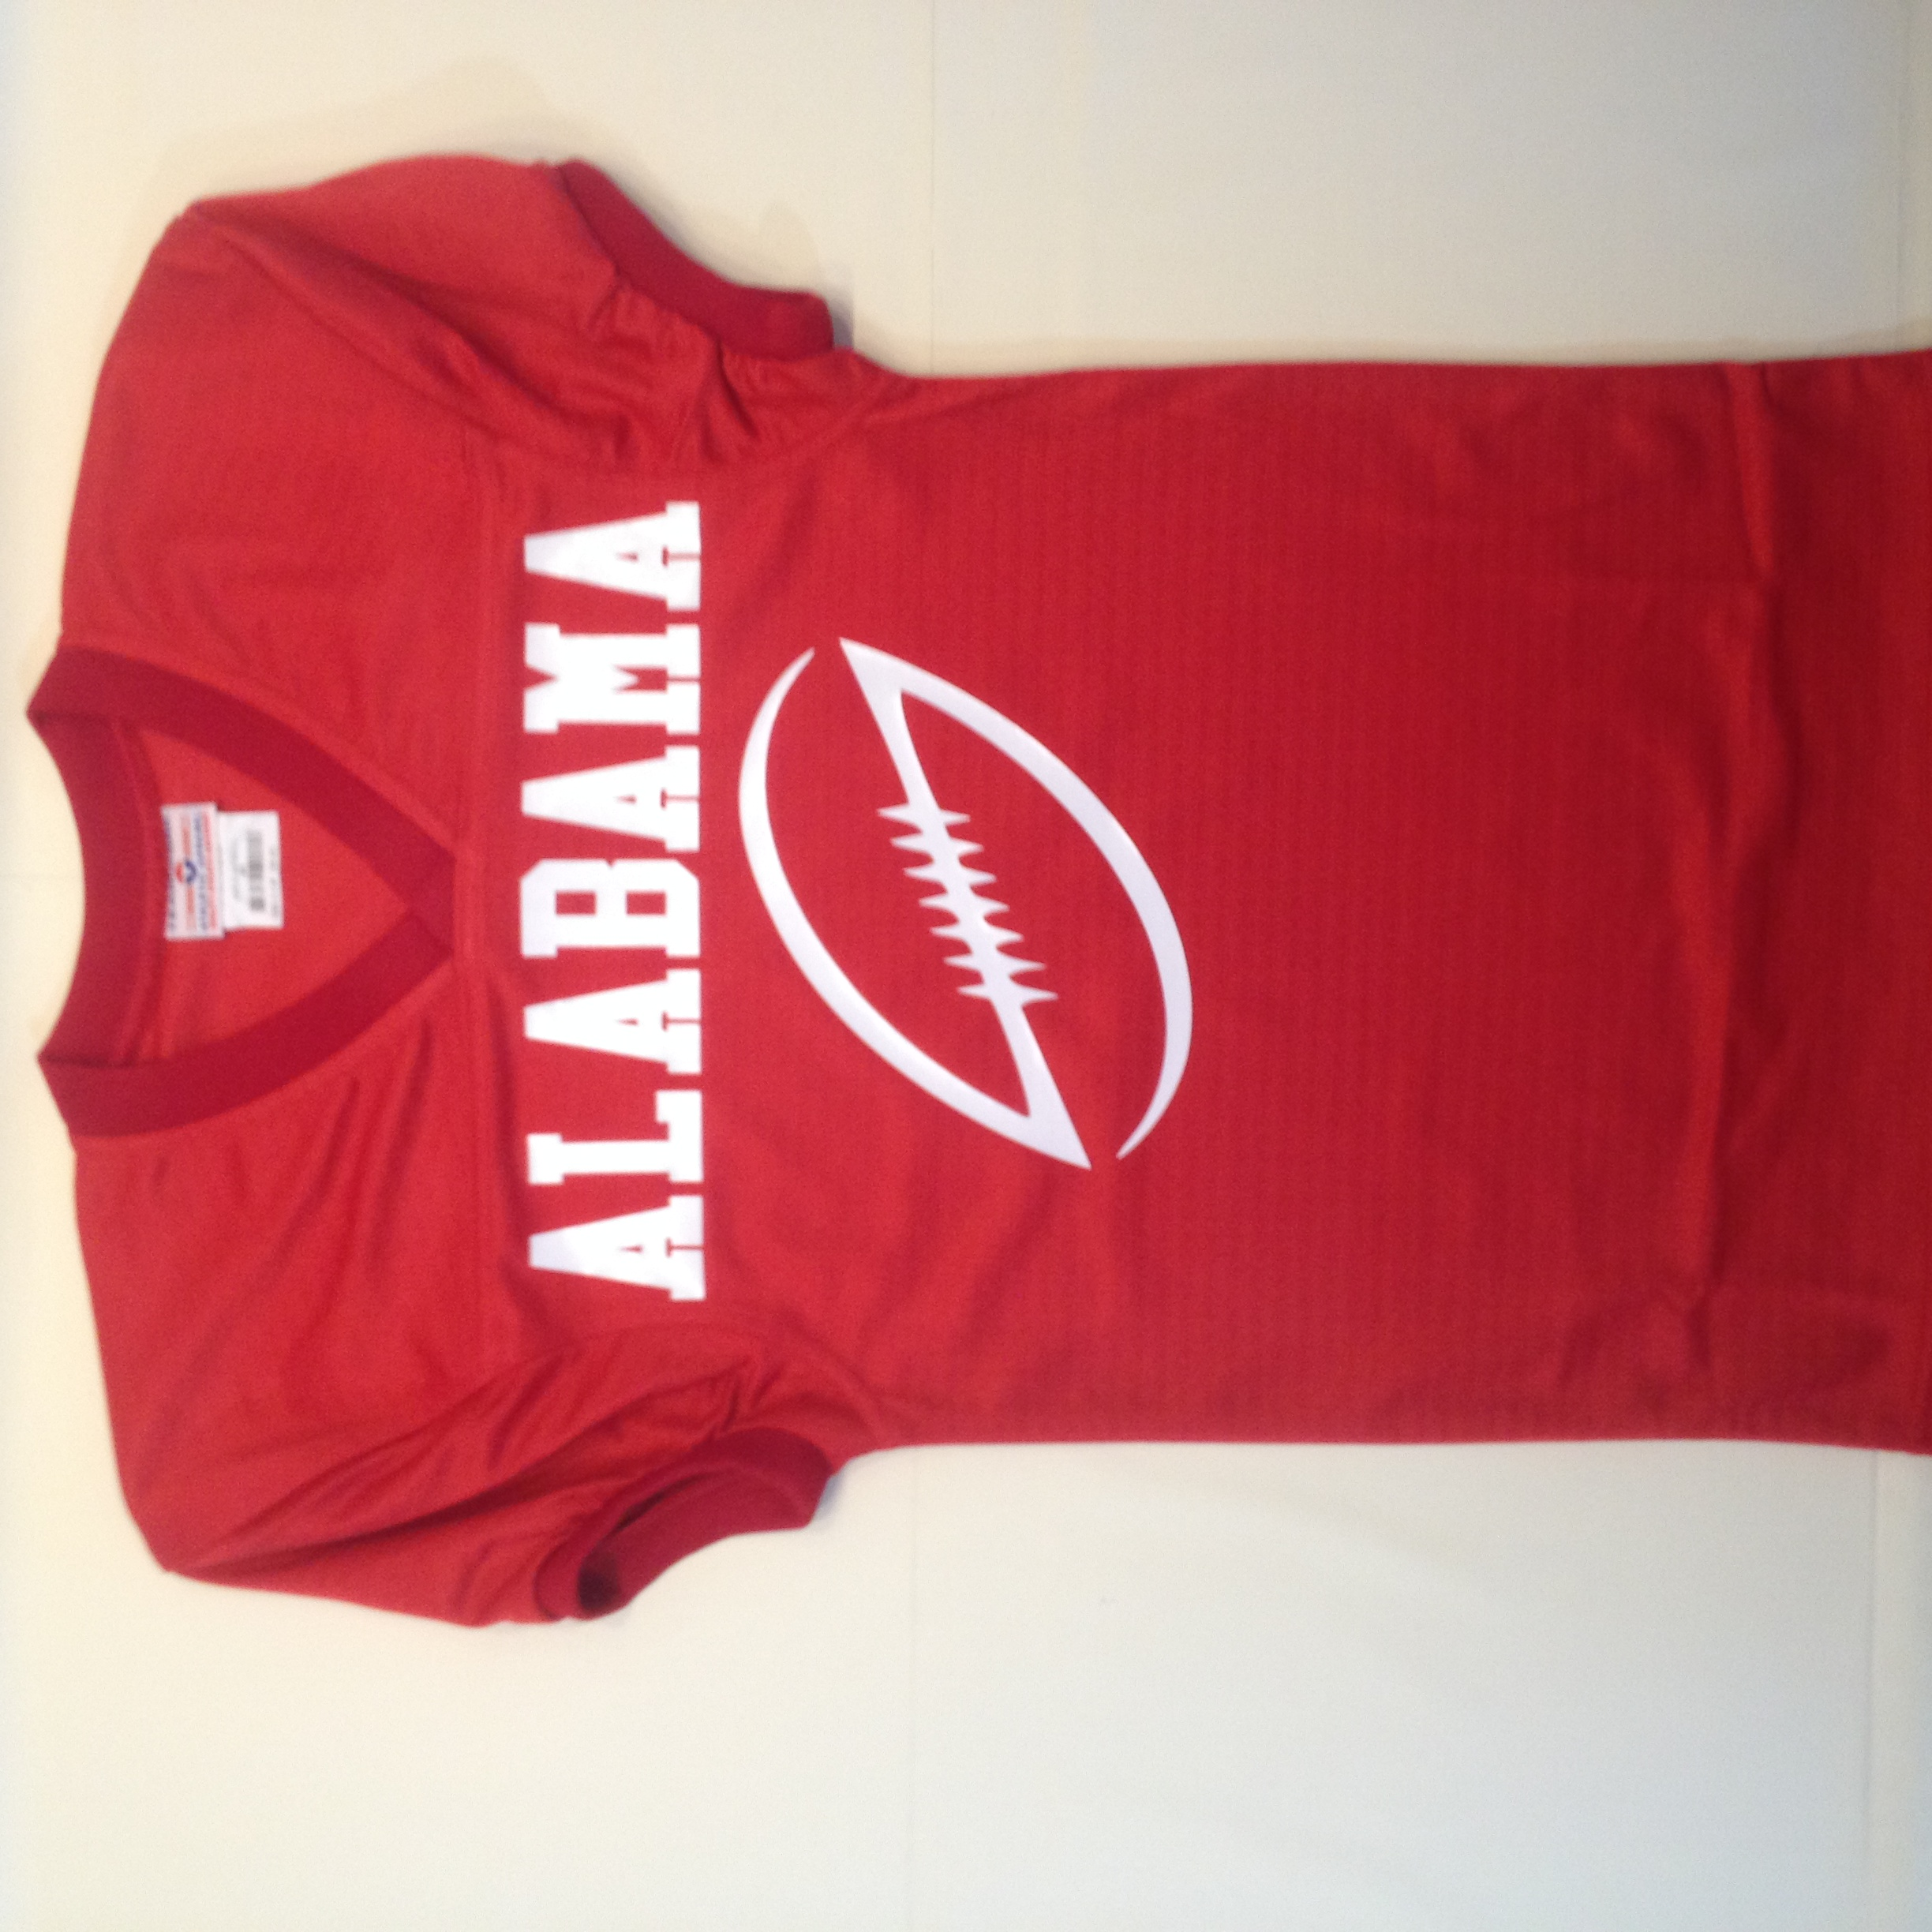 Alabama #crimson red custom #football jersey with cool modern.